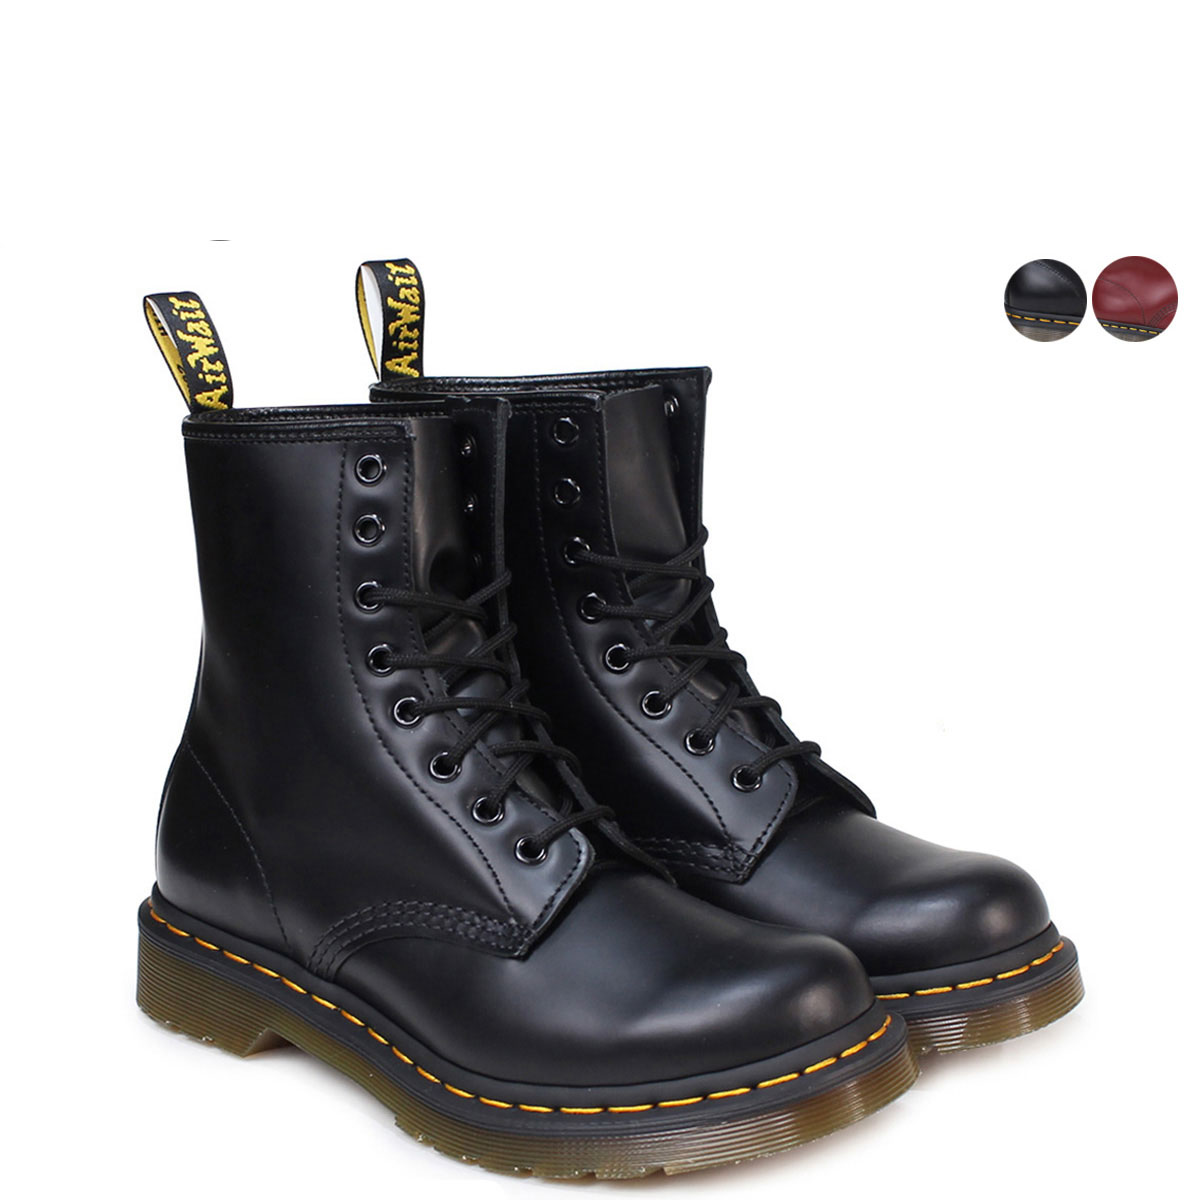 7248e3b9b0 Point 2 x Dr. Martens Dr.Martens 1460 WOMENS Ladies 8 hole boots MATERIAL  ...